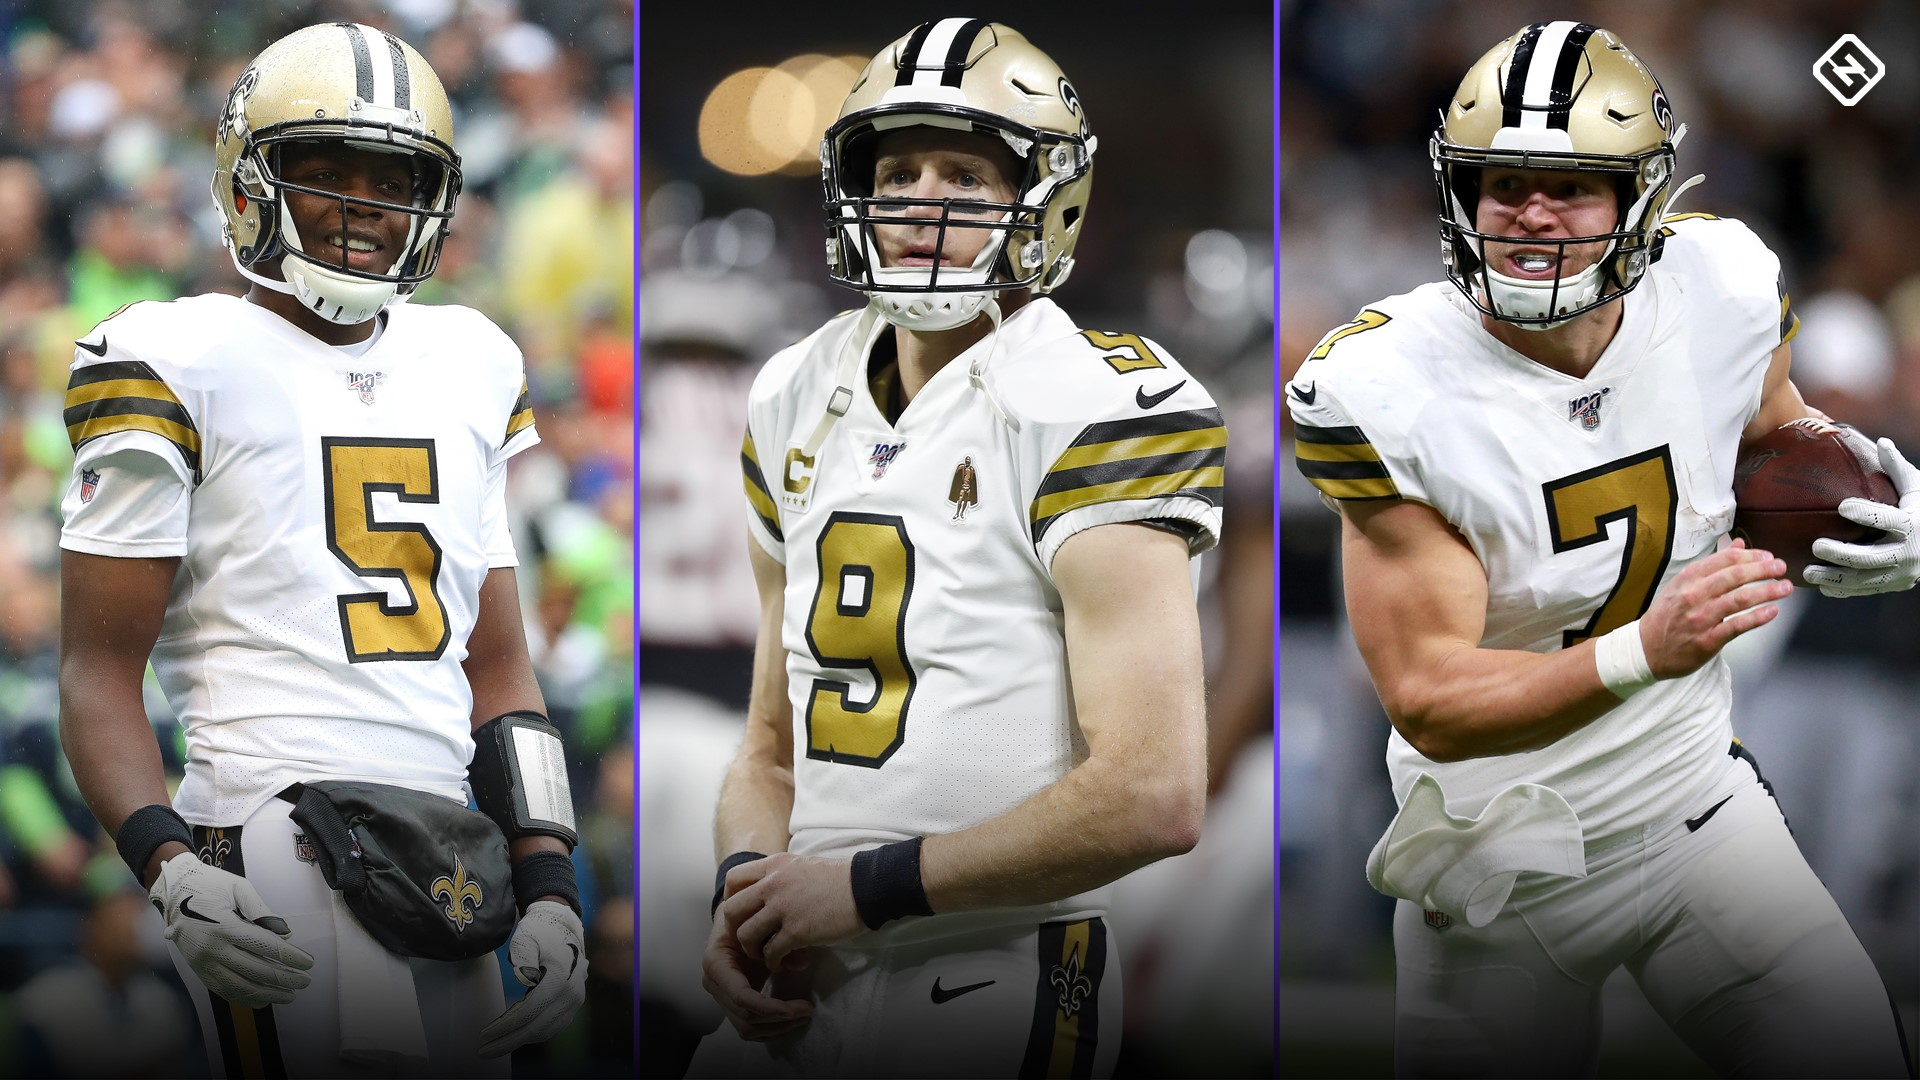 Who will play QB for Saints in 2020? Ranking the 7 scenarios for Drew Brees, Taysom Hill and Teddy Bridgewater